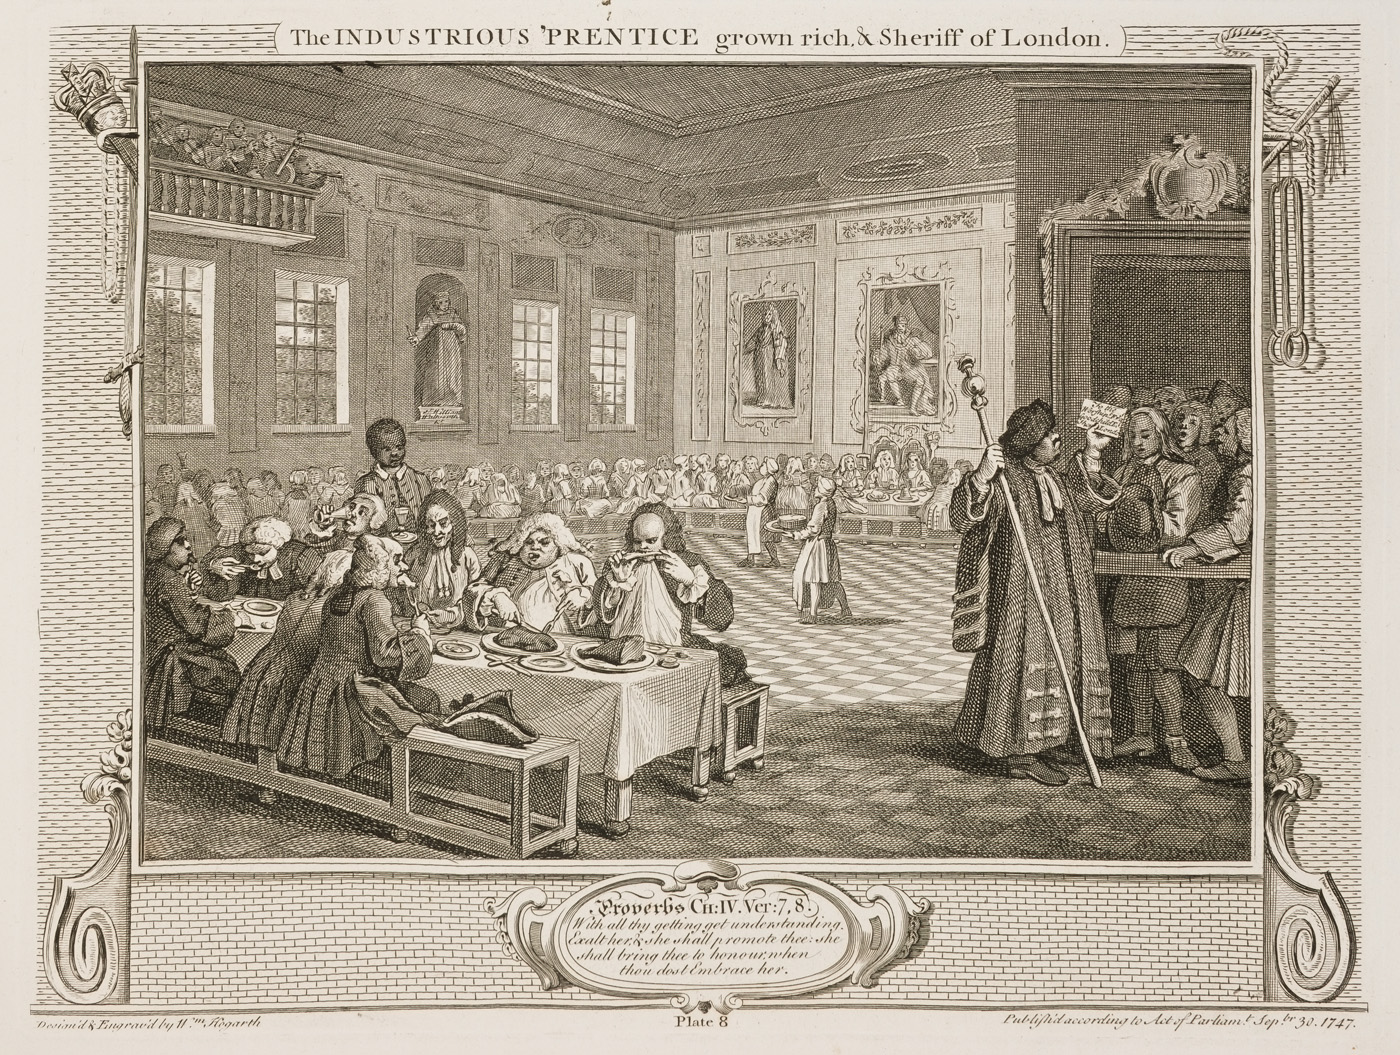 William Hogarth - Industry and Idleness - plate 8